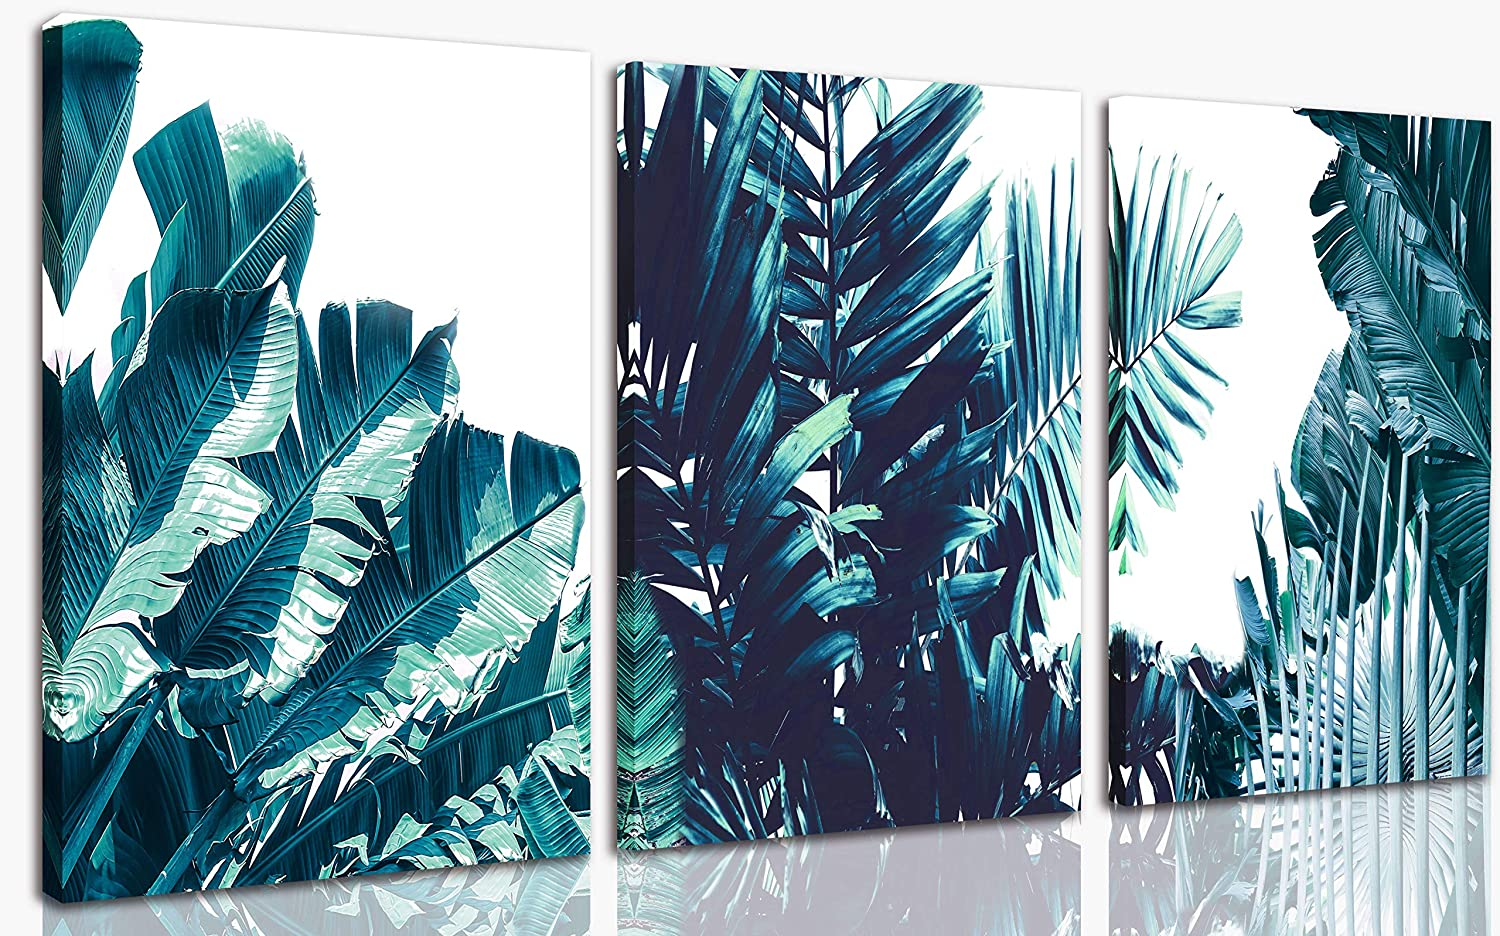 Aburaeart Monstera Plant Wall-Decor - Plants For Bedroom Decor -Wall Art For Living Room 3Piece Frame Easy To Hang On The Wall Size 12x16 Inches